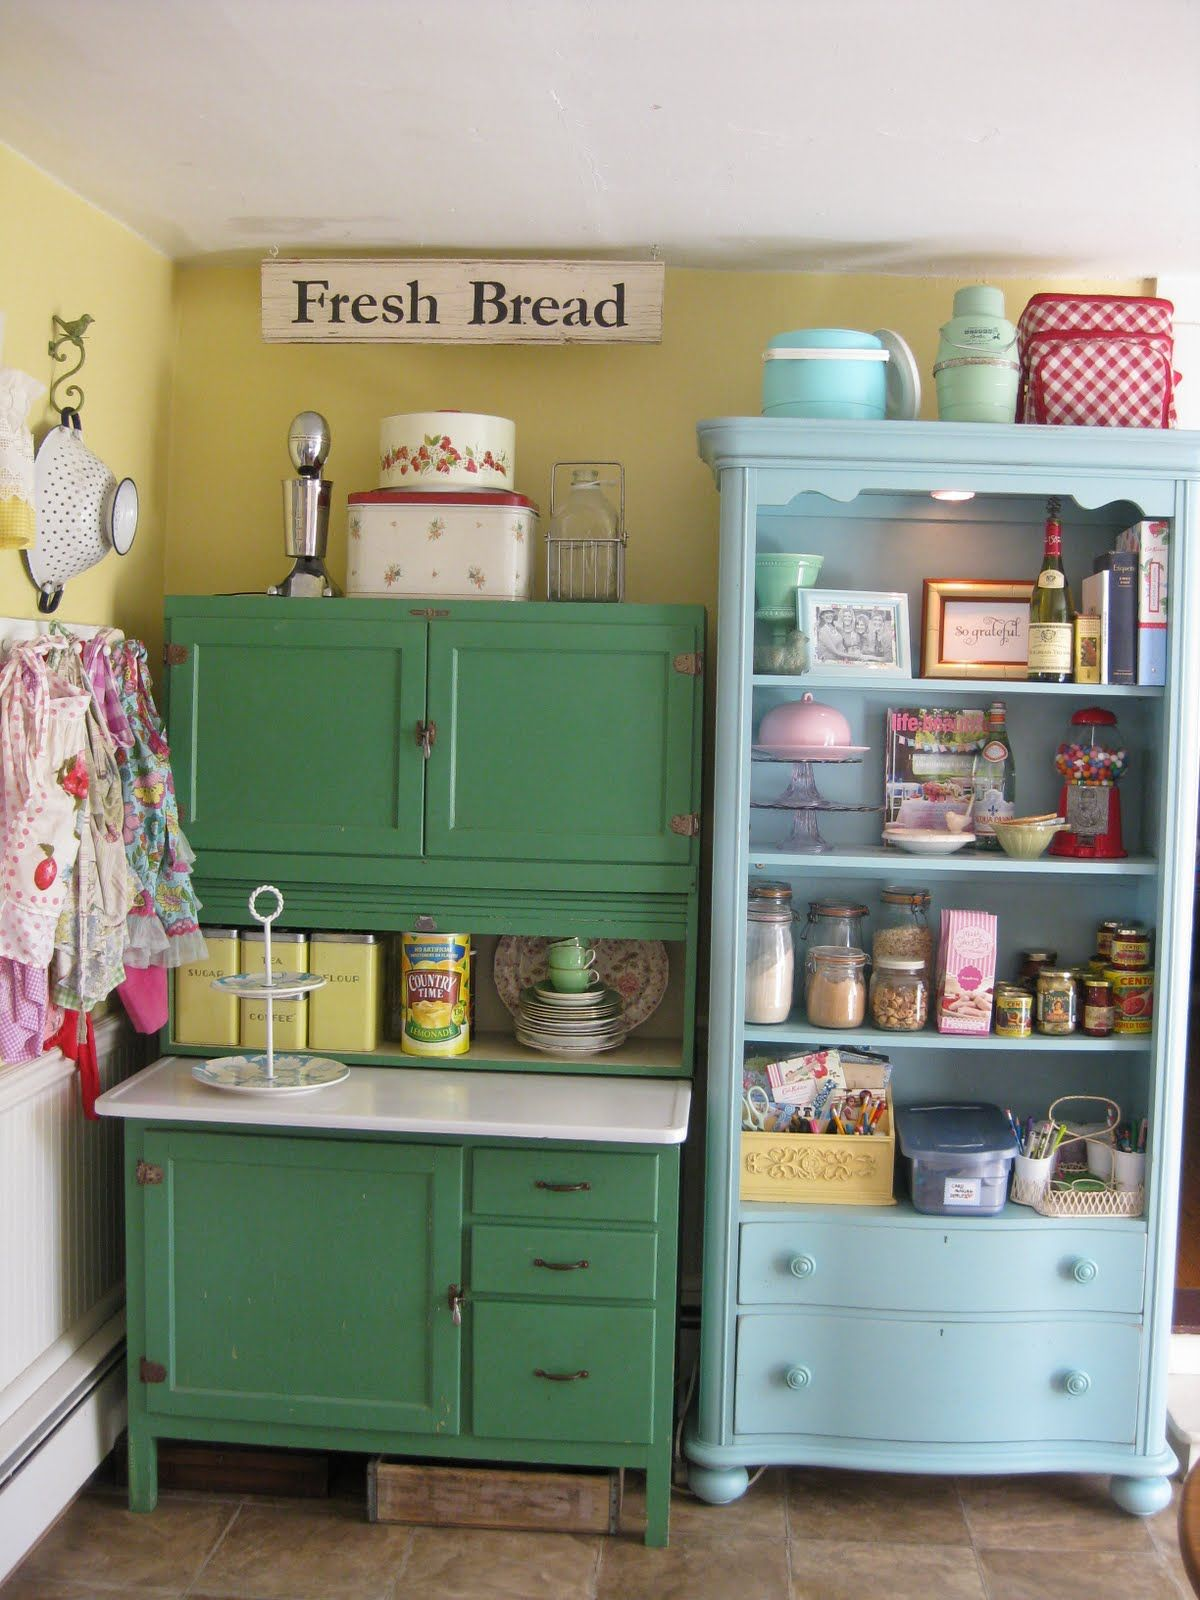 Kitchen Cabinets Vintage scenic green and blue vintage kitchen cabinet storage also open